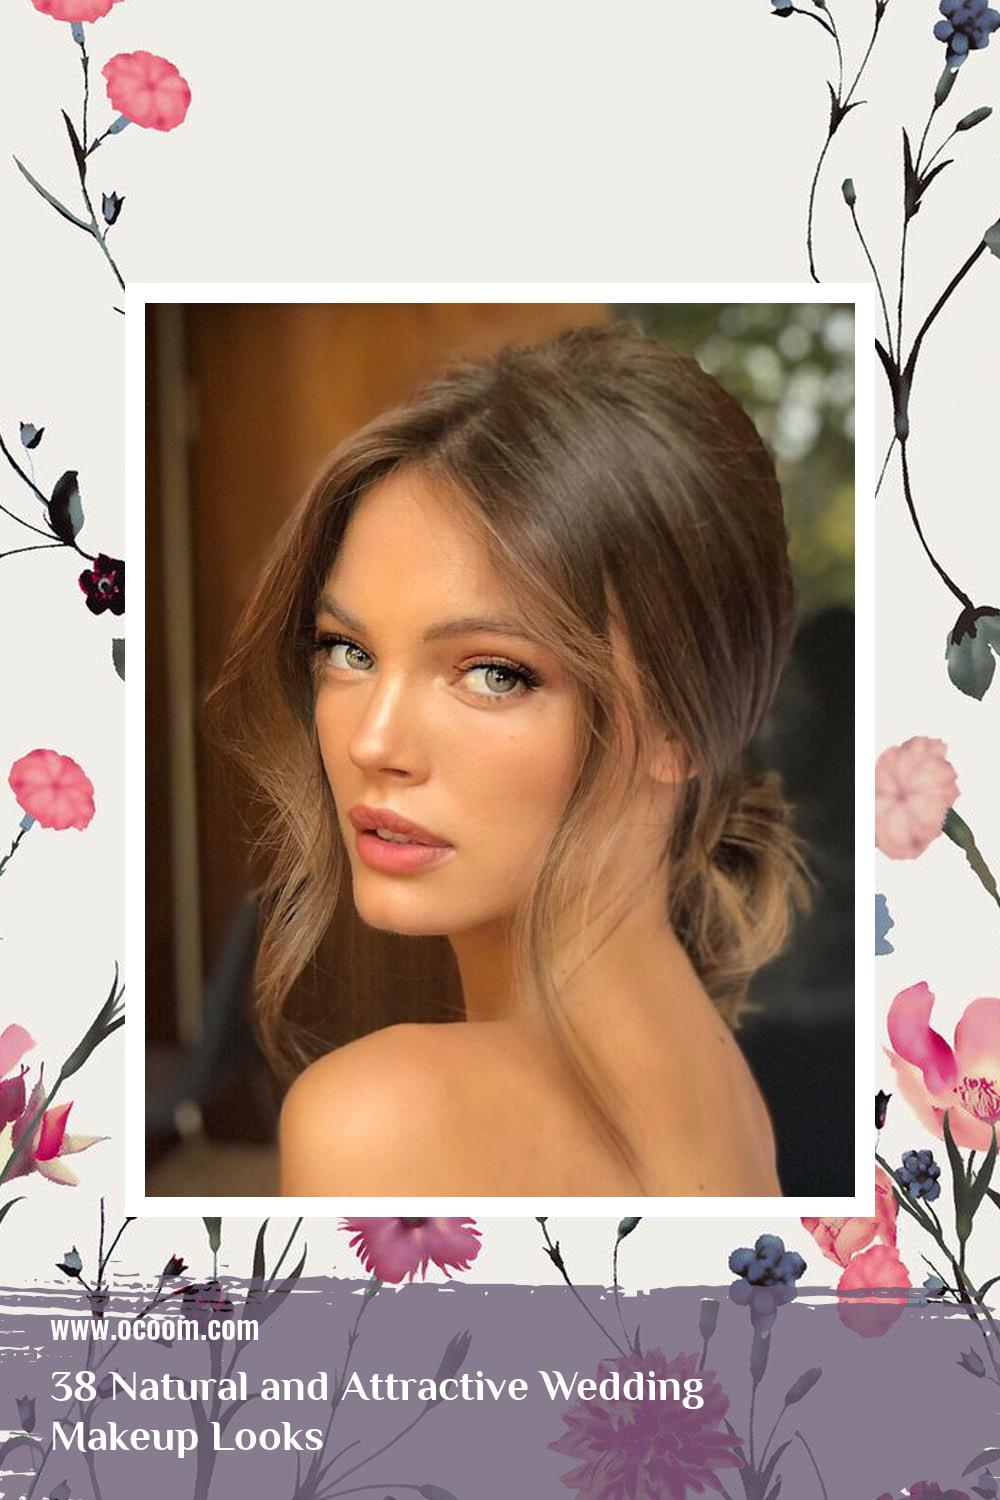 38 Natural and Attractive Wedding Makeup Looks 37